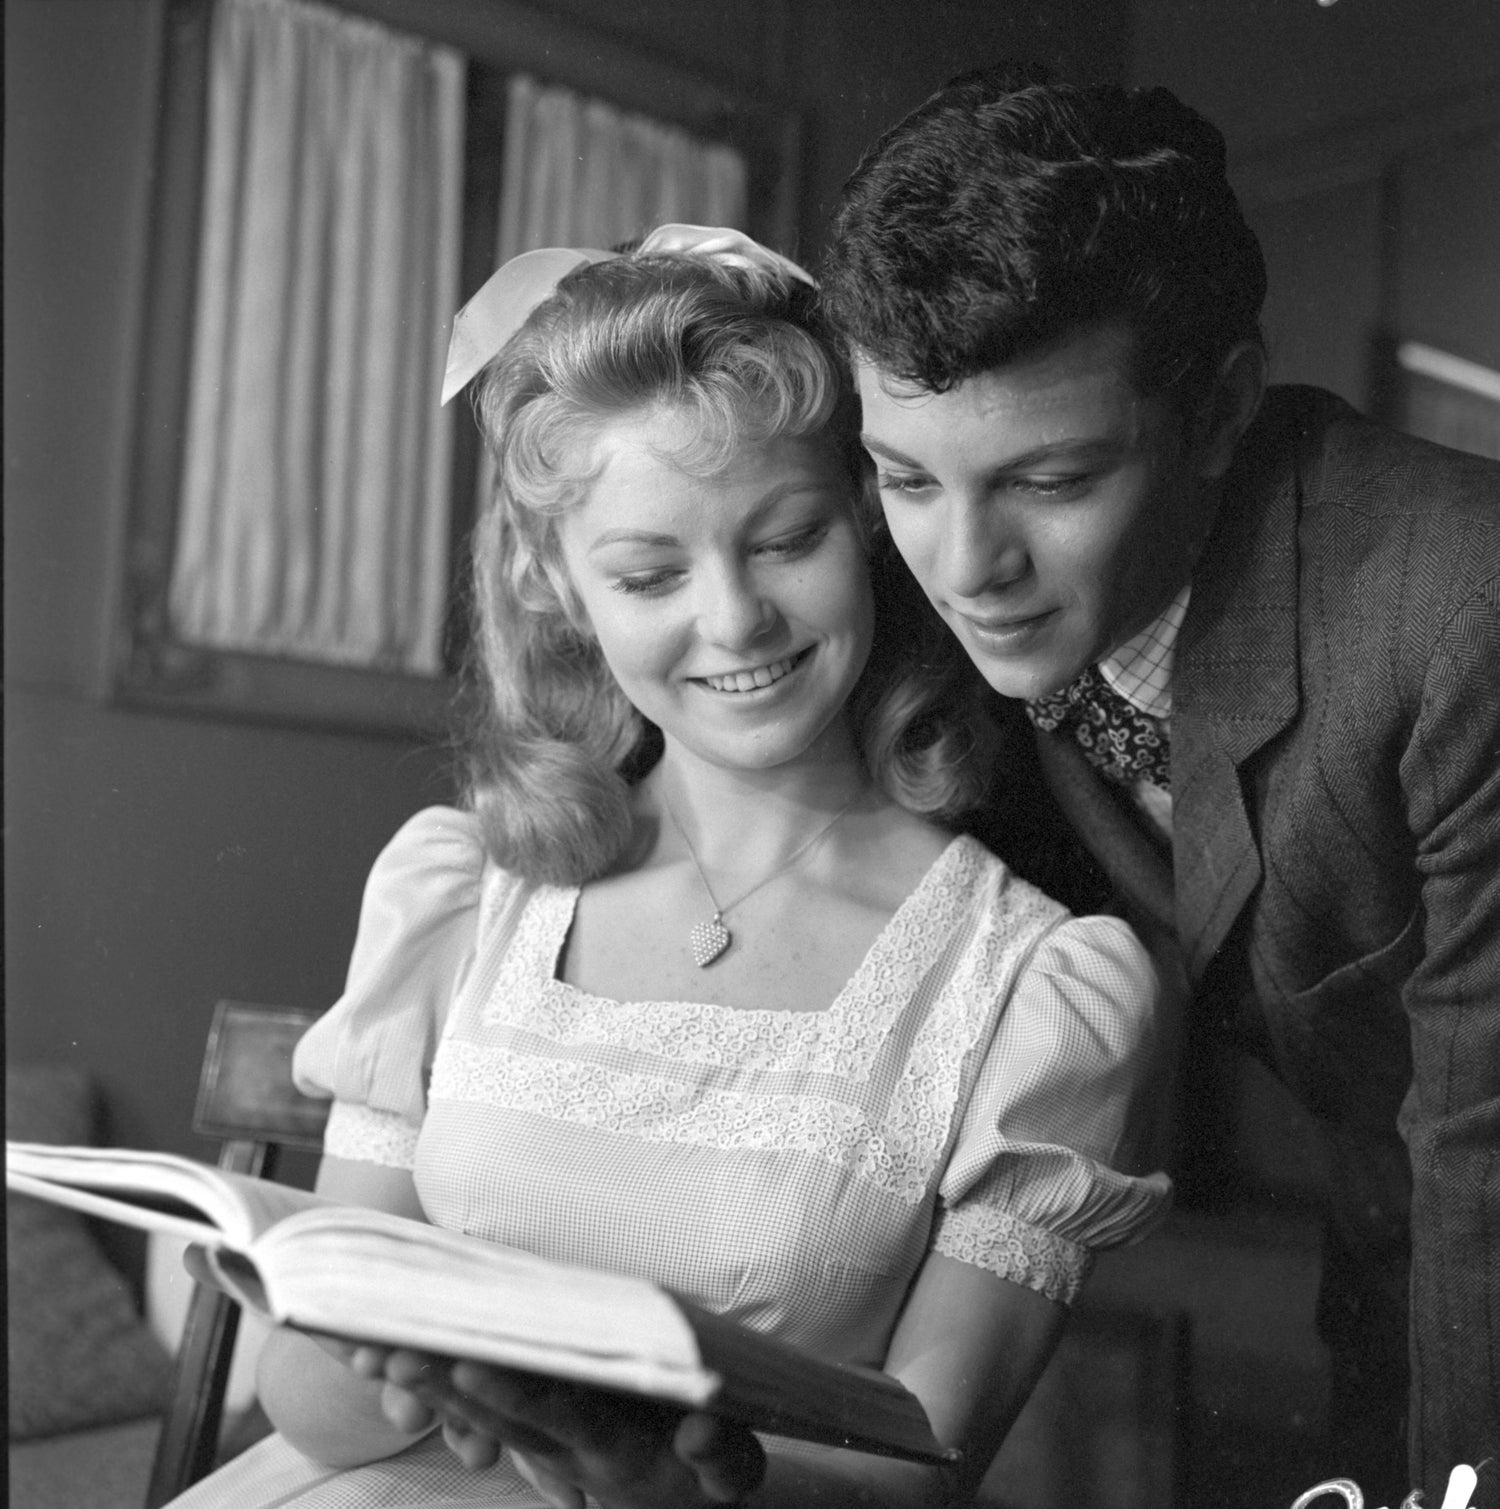 Frankie Avalon Pics for larry barbier - frankie avalon and alana ladd reading, photograph